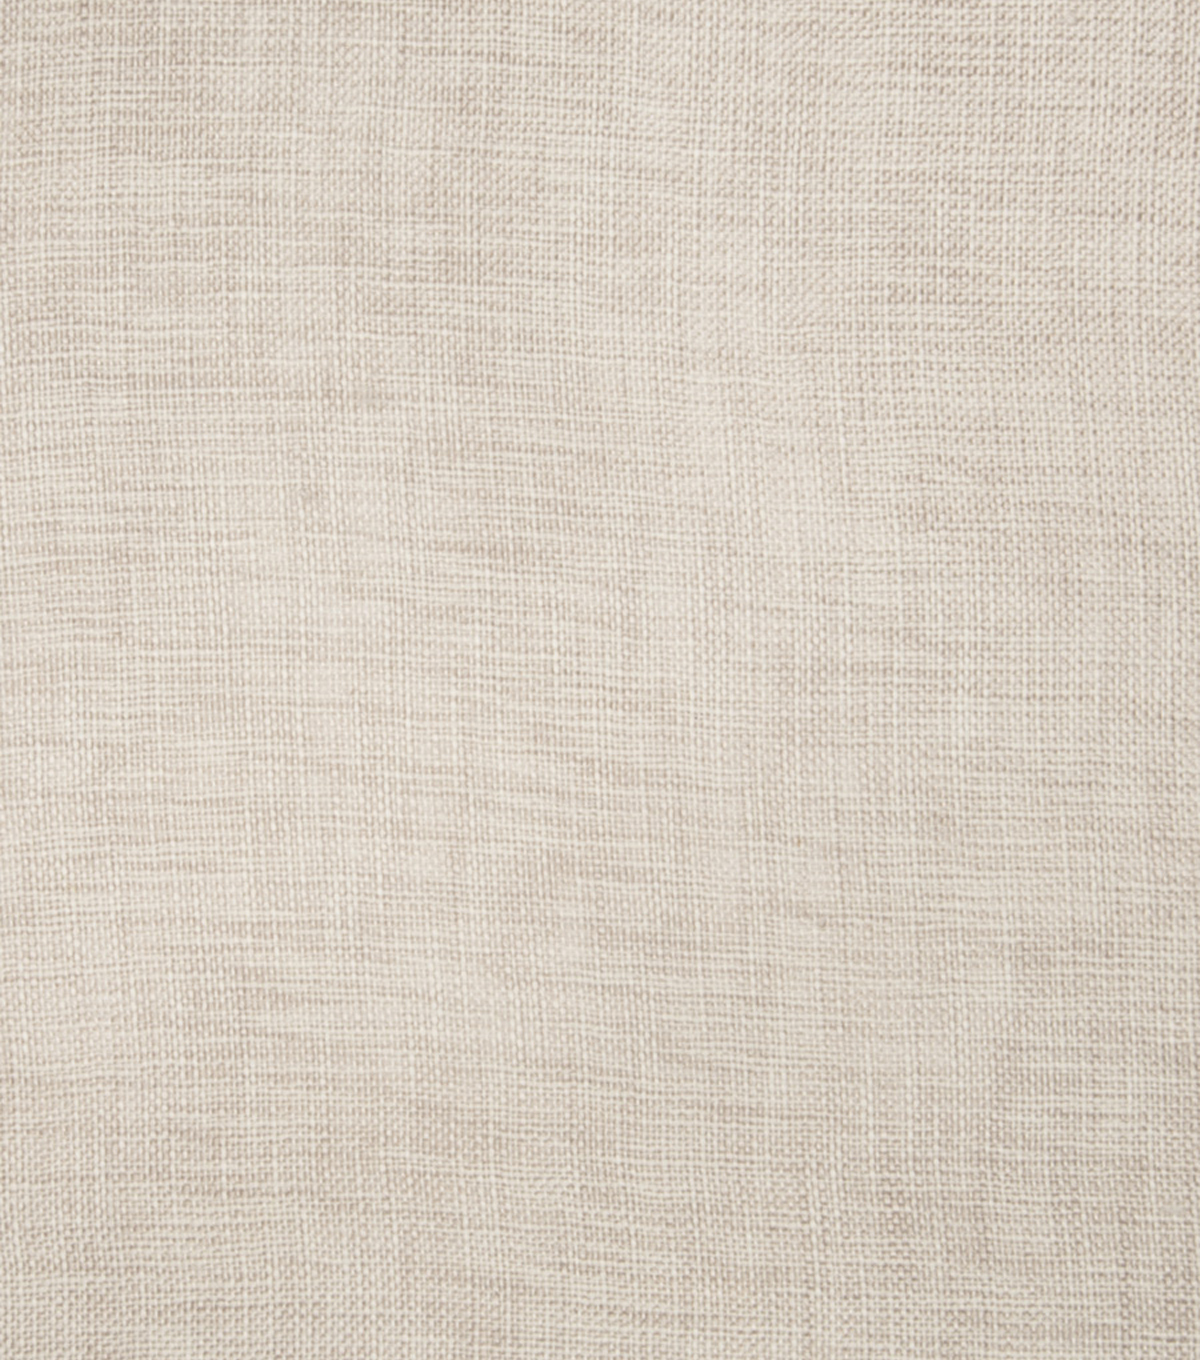 Home Decor 8\u0022x8\u0022 Fabric Swatch-Eaton Square Bayonne Beige